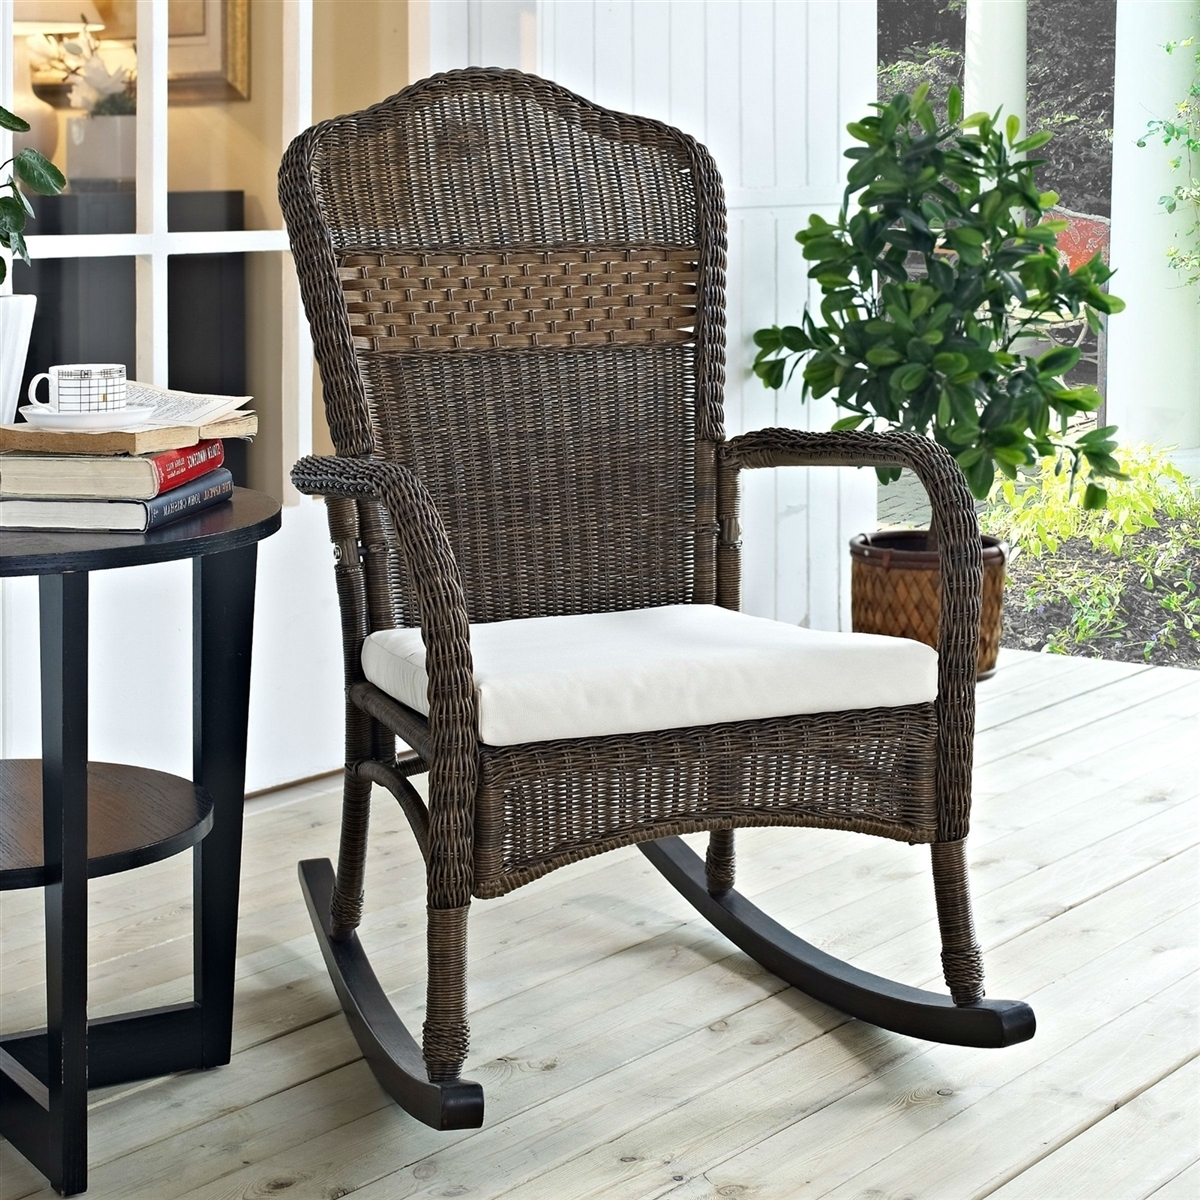 Image of: Wicker Patio Rocking Chair Mocha Indooroutdoor With Beige Cushion With Regard To Outdoor Rocking Chairs With Cushions Good Outdoor Rocking Chairs With Cushions